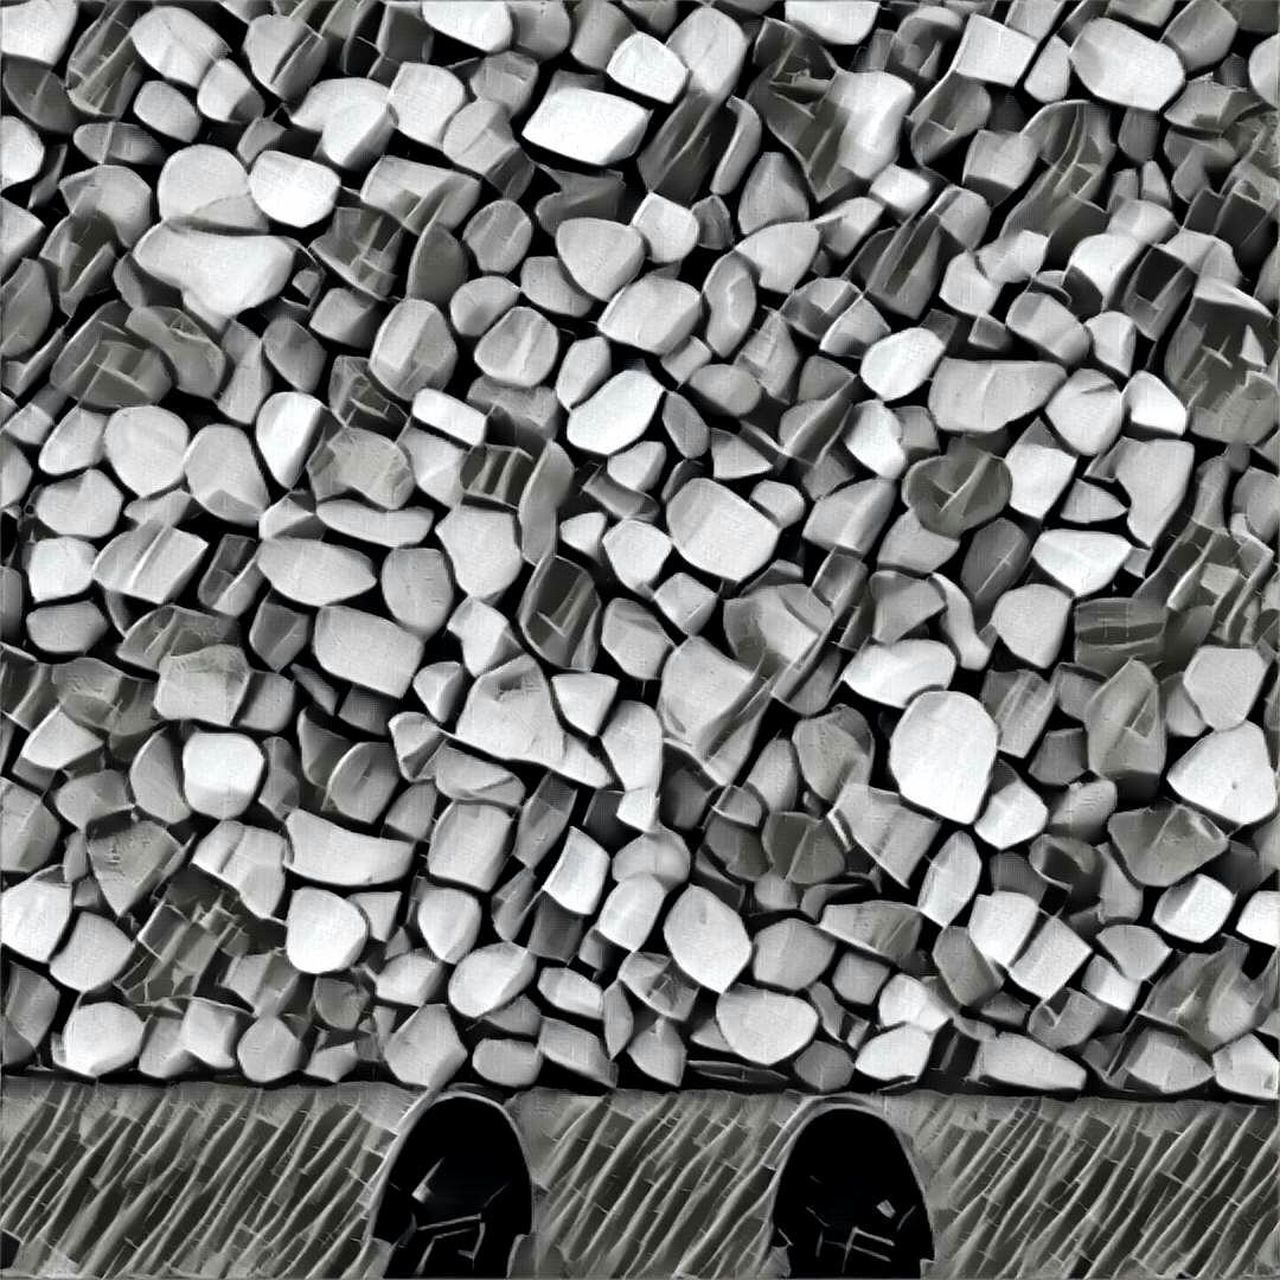 abundance, low section, large group of objects, standing, stack, shoe, directly above, pebble, human leg, real people, human body part, full frame, day, one person, close-up, outdoors, pebble beach, people